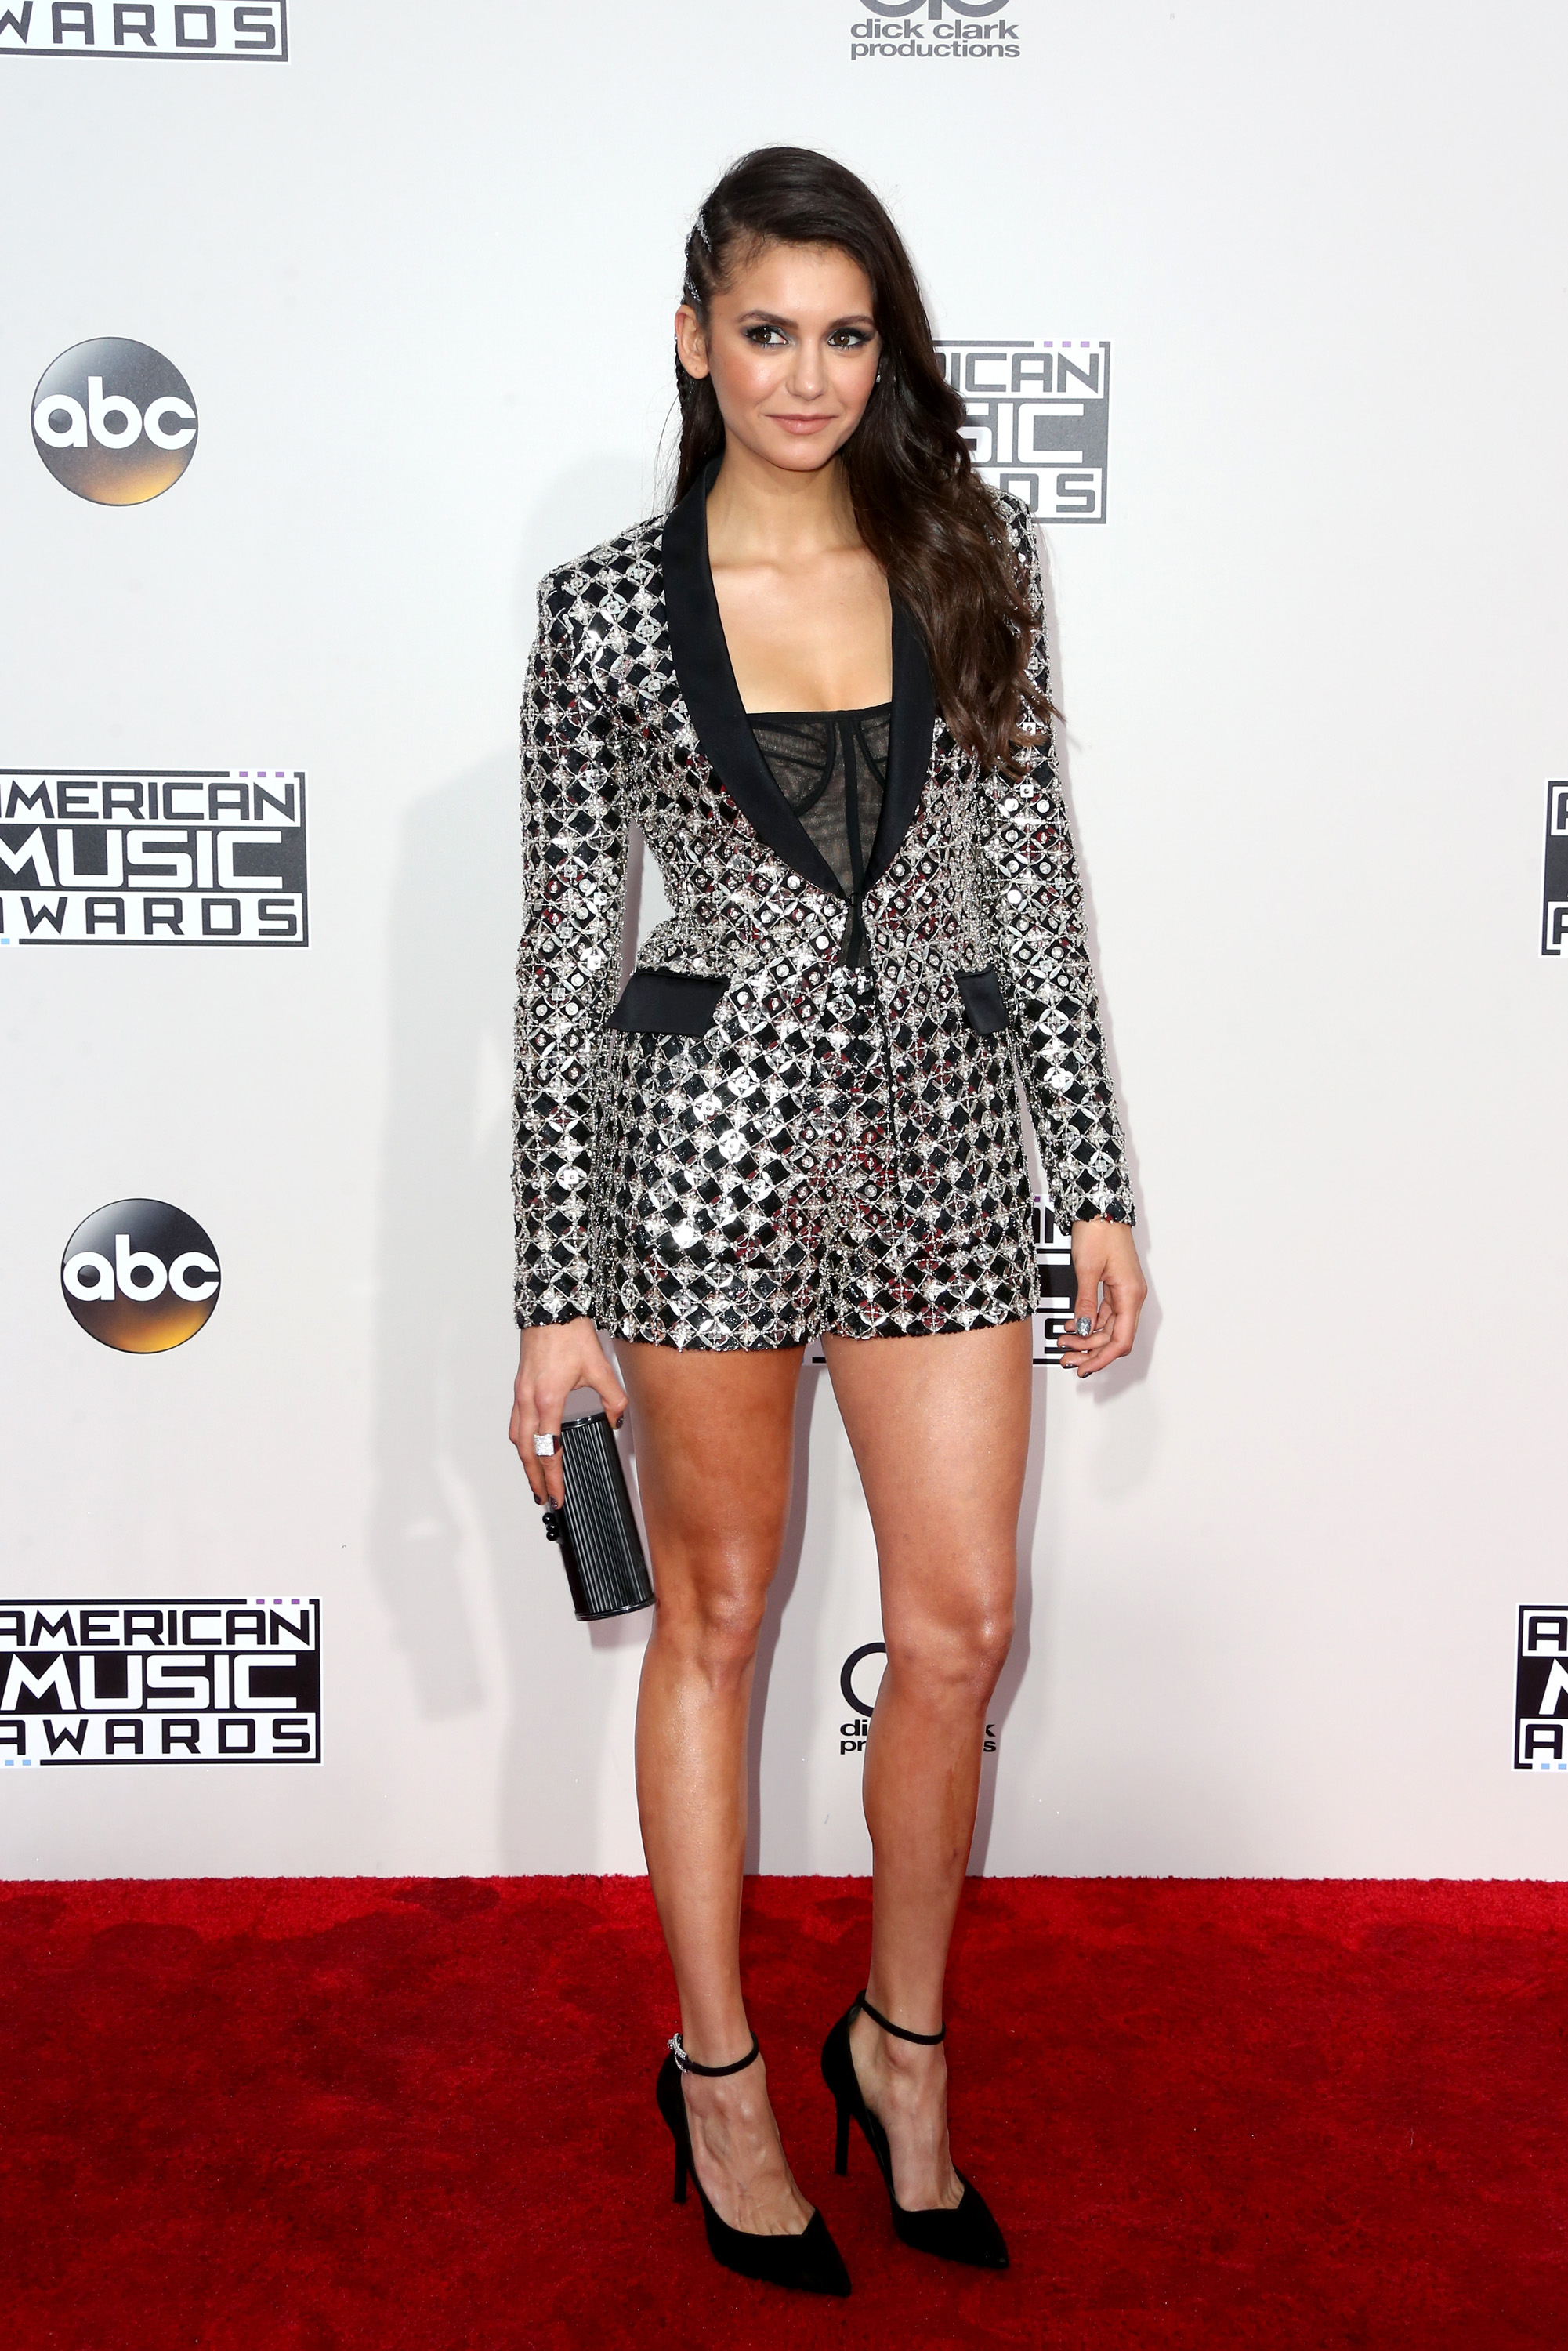 LOS ANGELES, CA - NOVEMBER 20: Actress Nina Dobrev attends the 2016 American Music Awards at Microsoft Theater on November 20, 2016 in Los Angeles, California. (Photo by Frederick M. Brown/Getty Images)